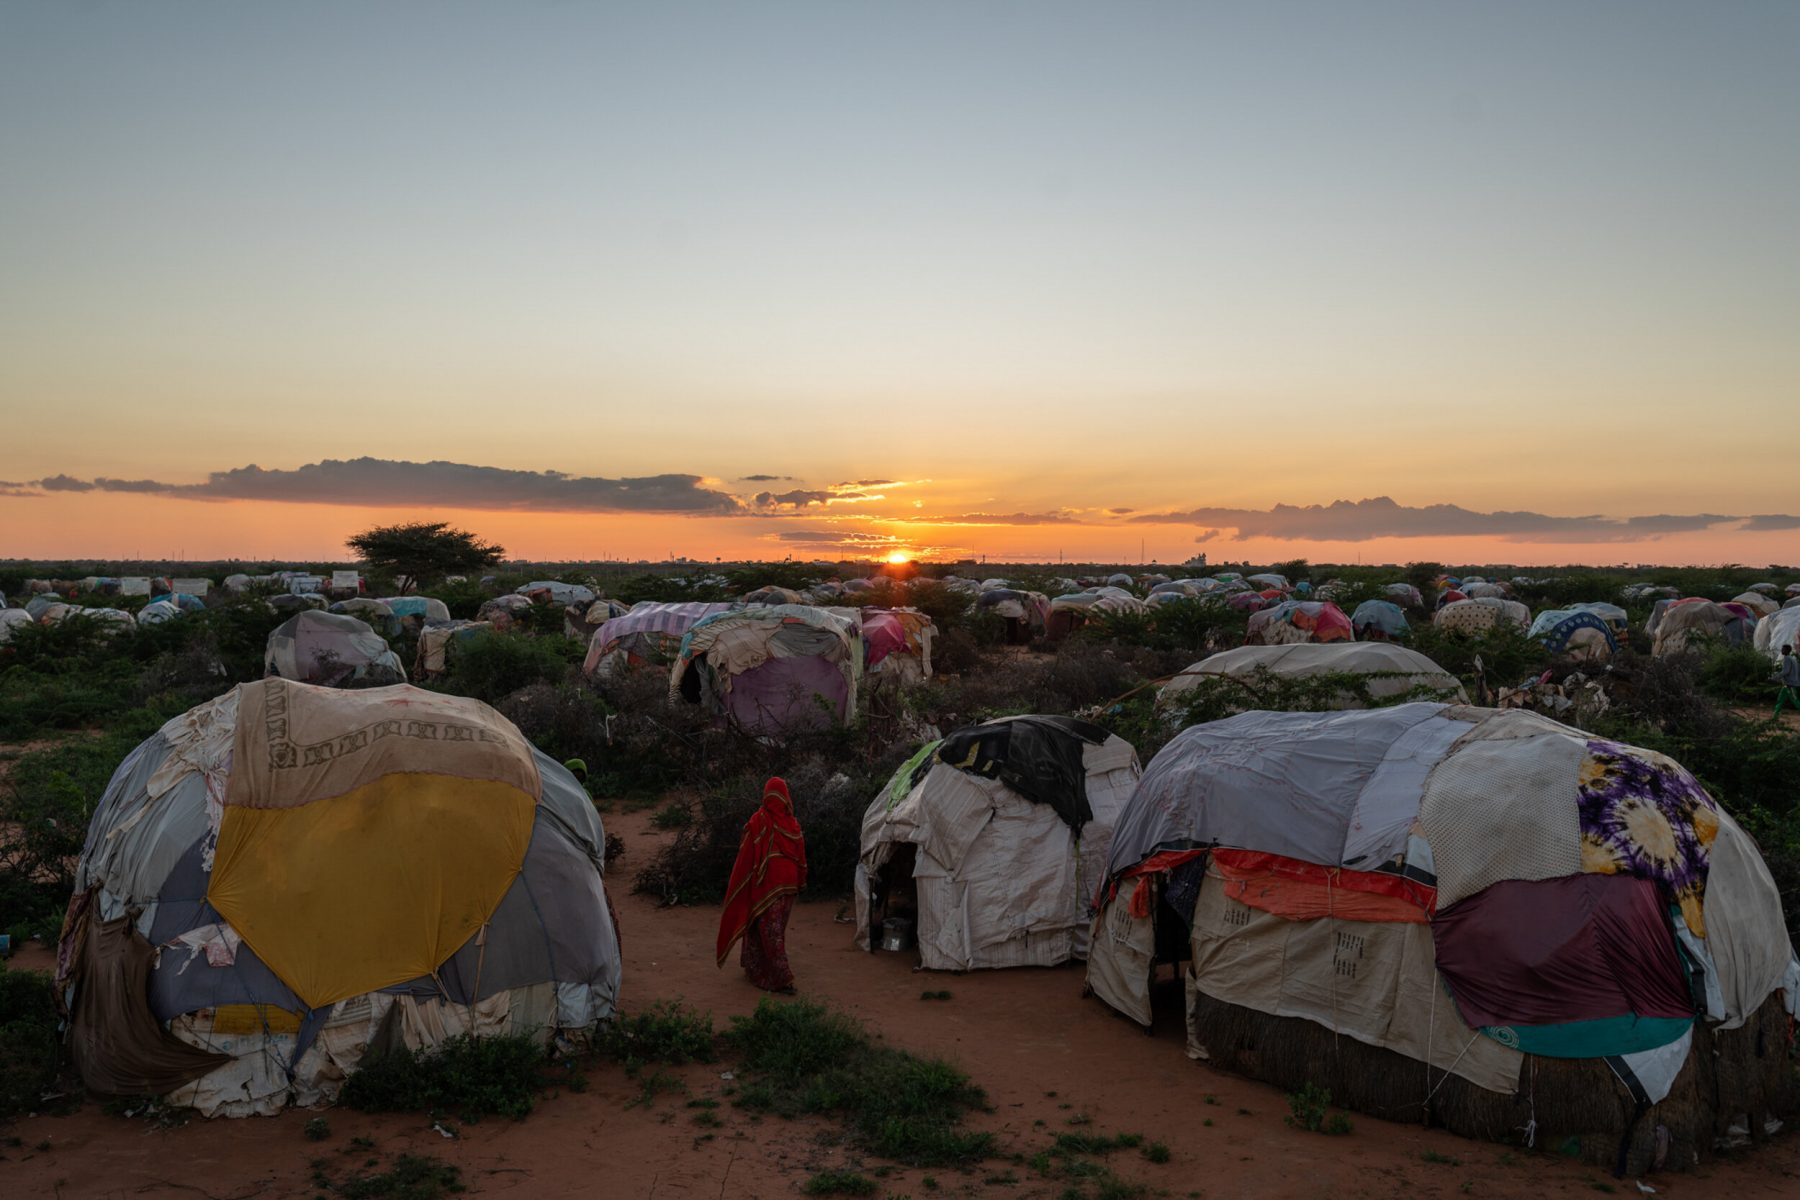 Color photograph by Nichole Sobecki, refugee, migrant, camp Somalia, Somaliland, tents